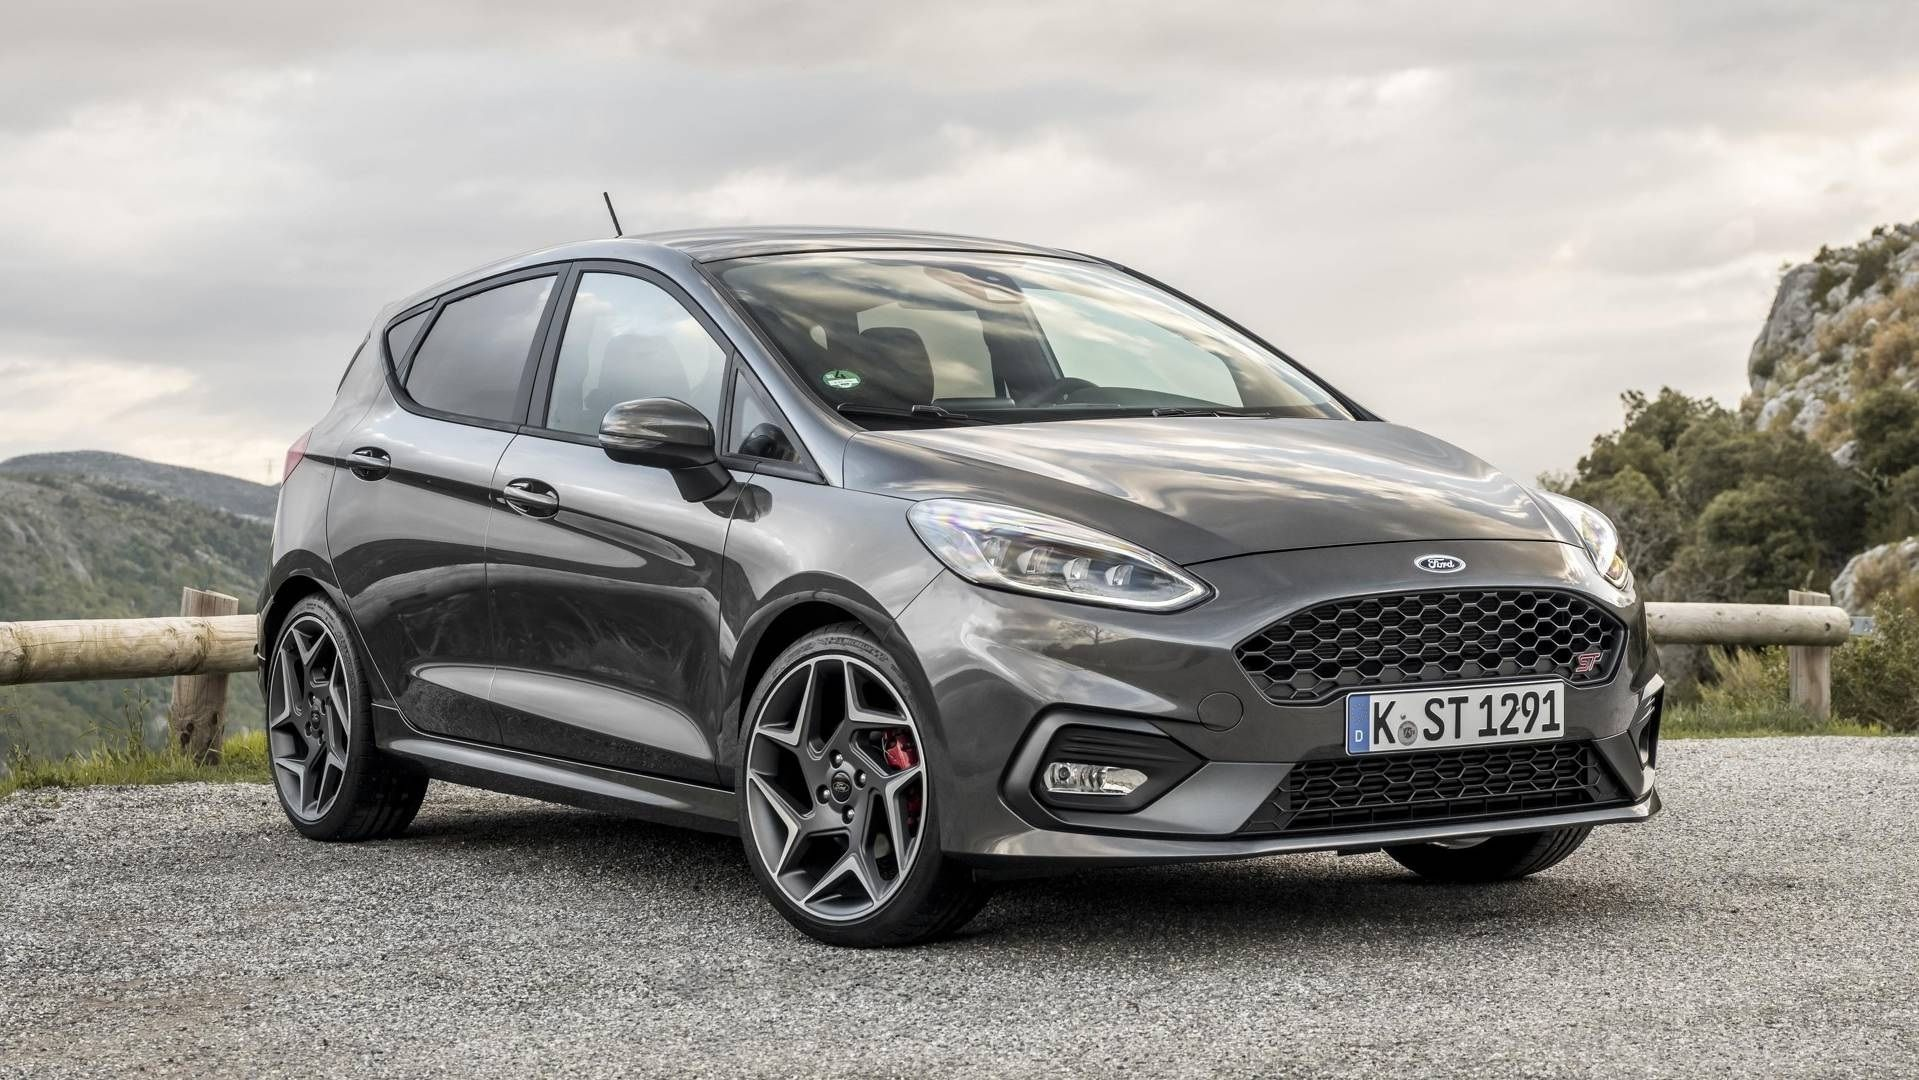 Photos Of 2020 Ford Fiesta Rs Concept Ford Fiesta St Fiesta St Ford Fiesta